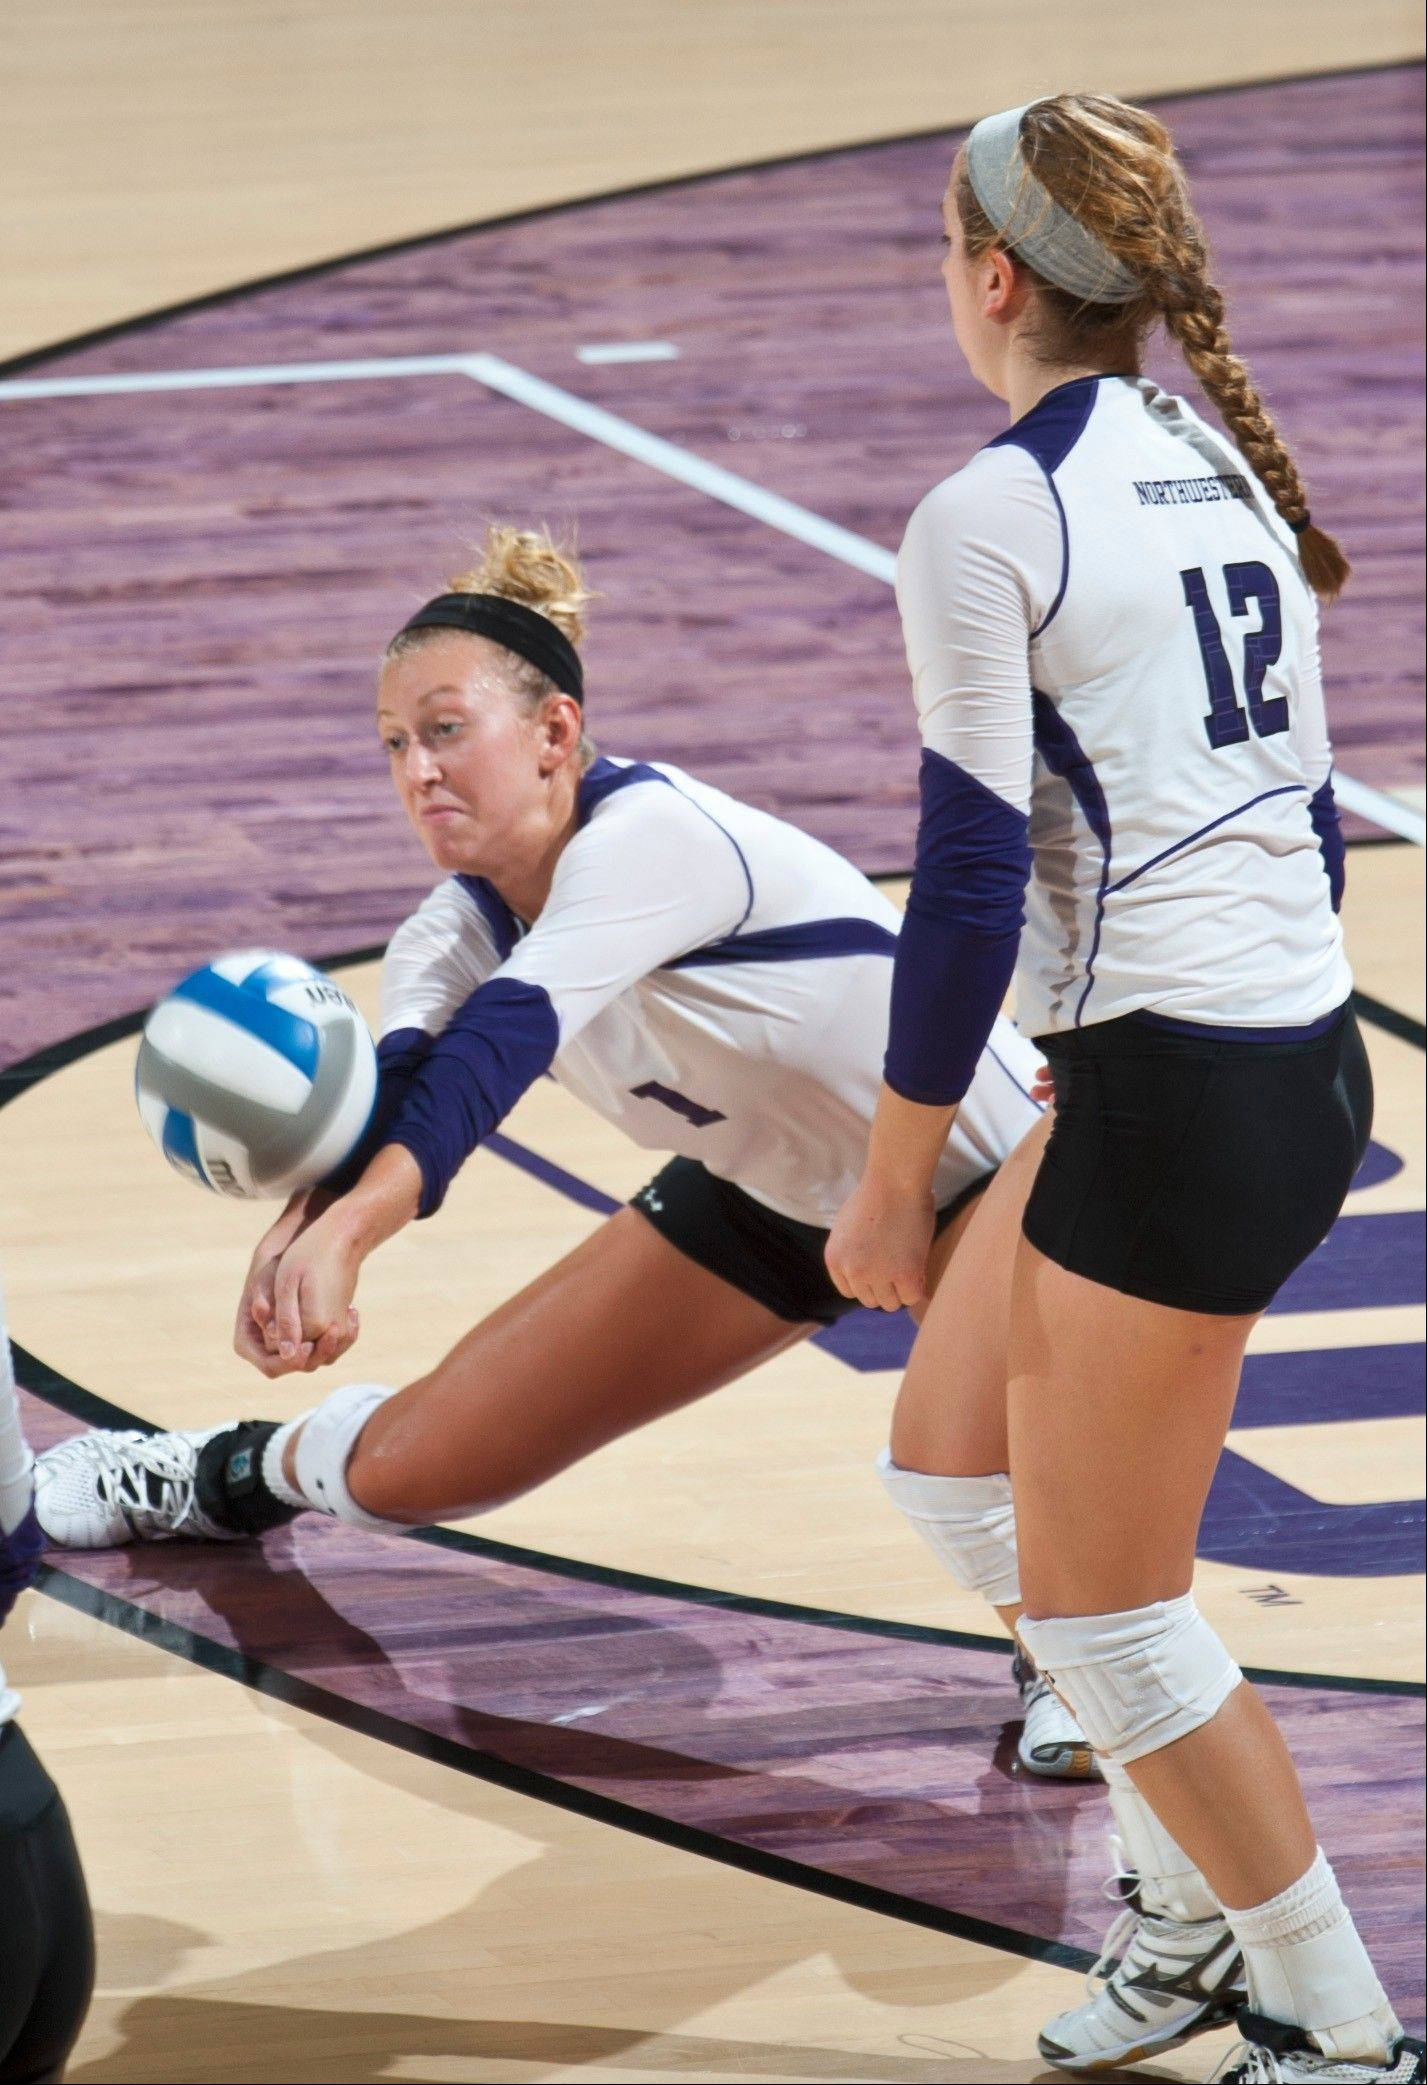 Burlington Central graduate and Northwestern University senior Stephanie Holthus was named the AVCA National Player of the Week for her performance in the Wildcat Invitational last weekend.